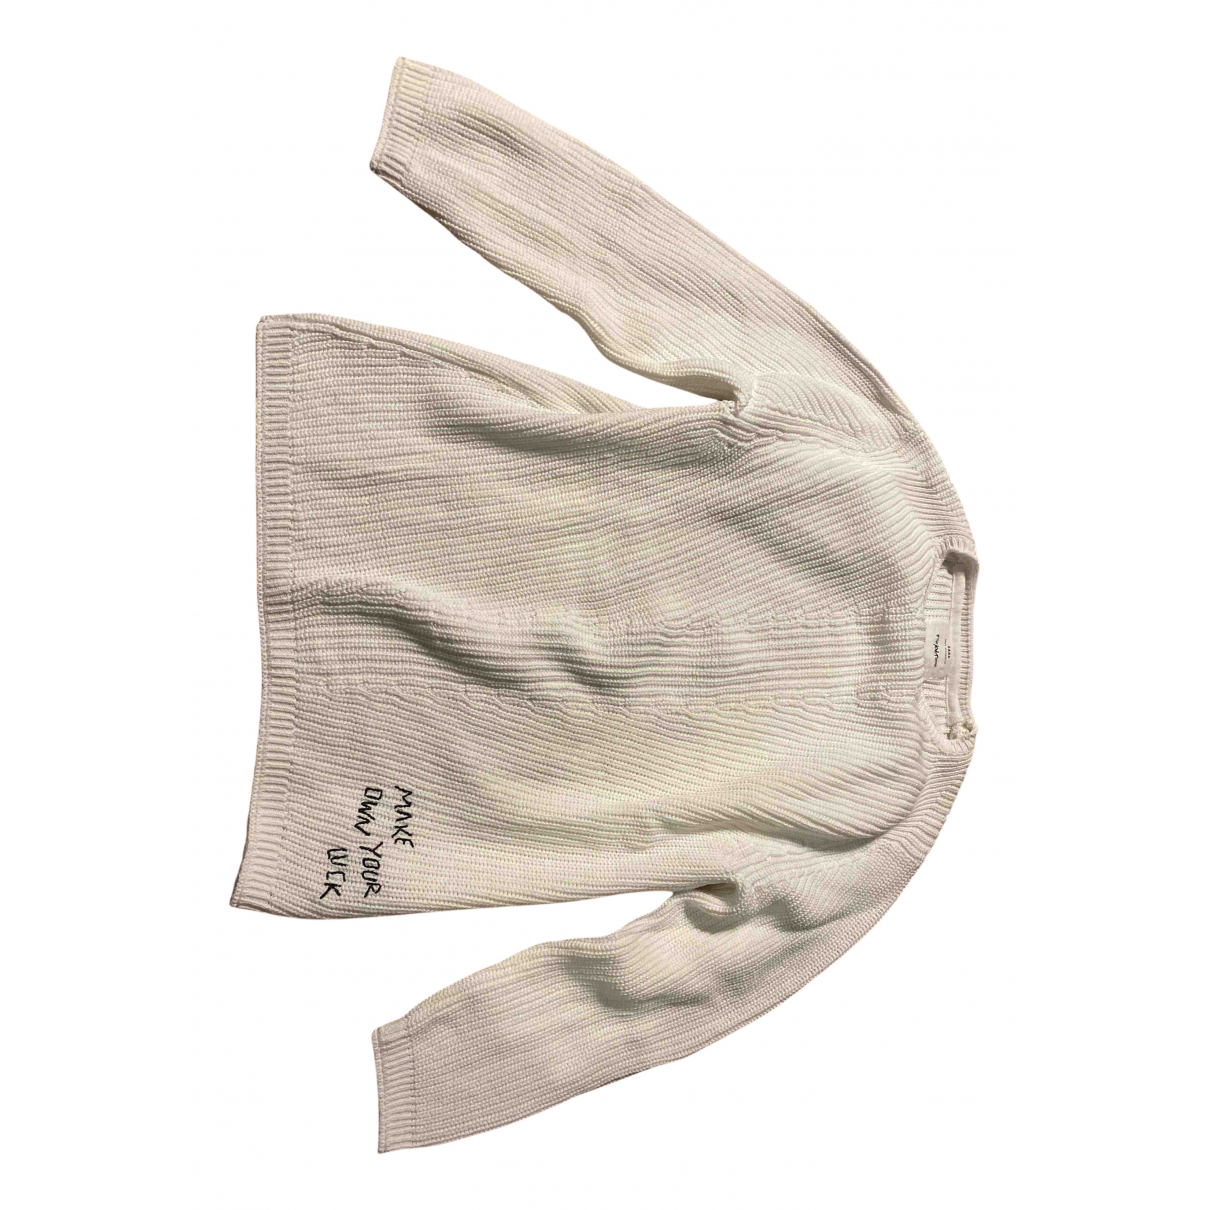 Zara N White Cotton Knitwear for Kids 10 years - up to 142cm FR